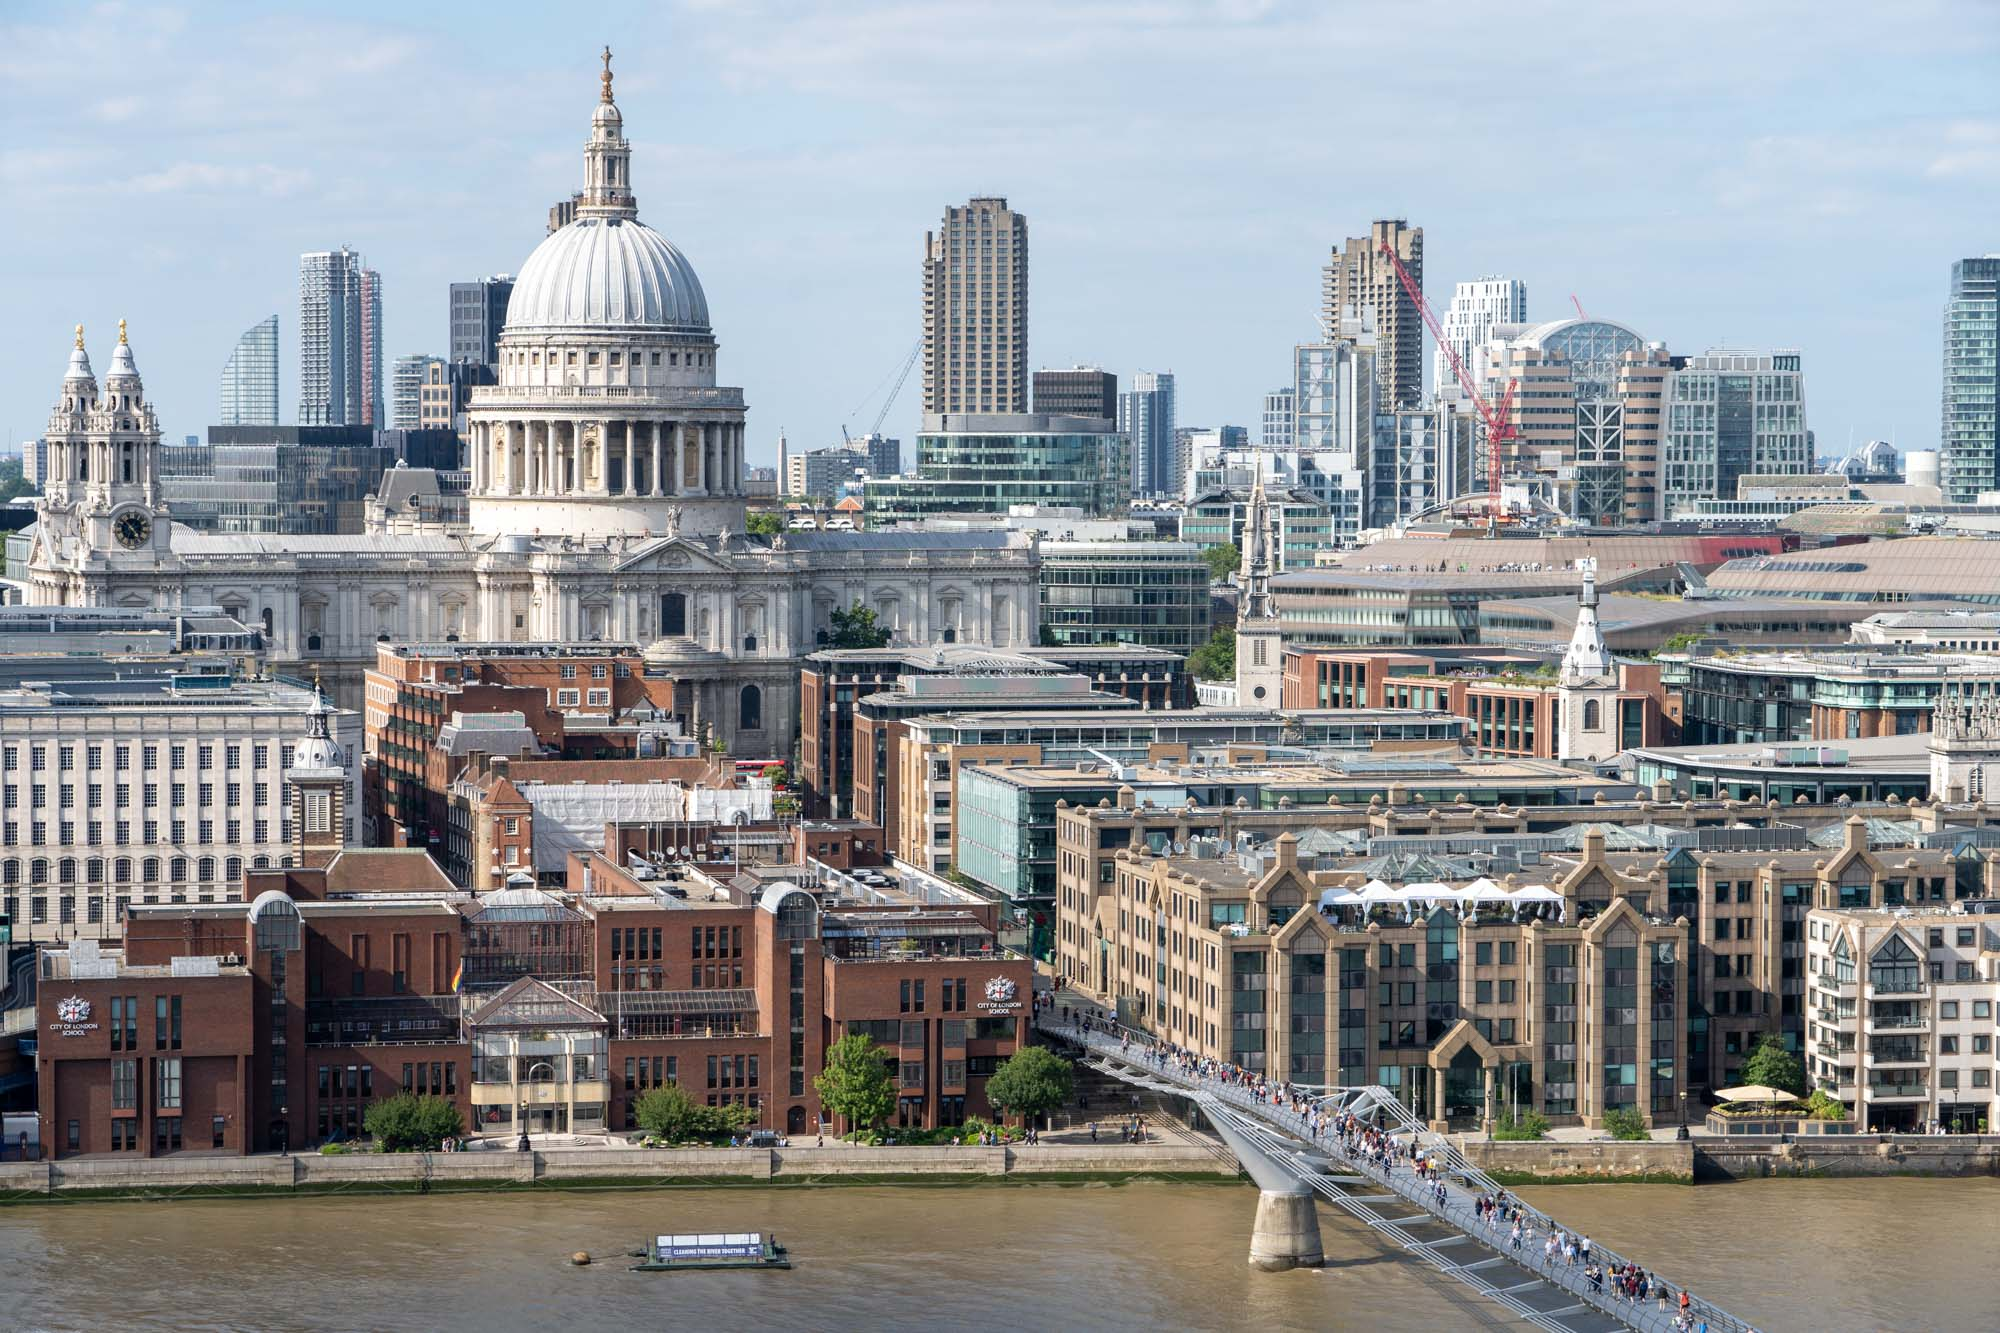 St. Paul's Cathedral skyline view